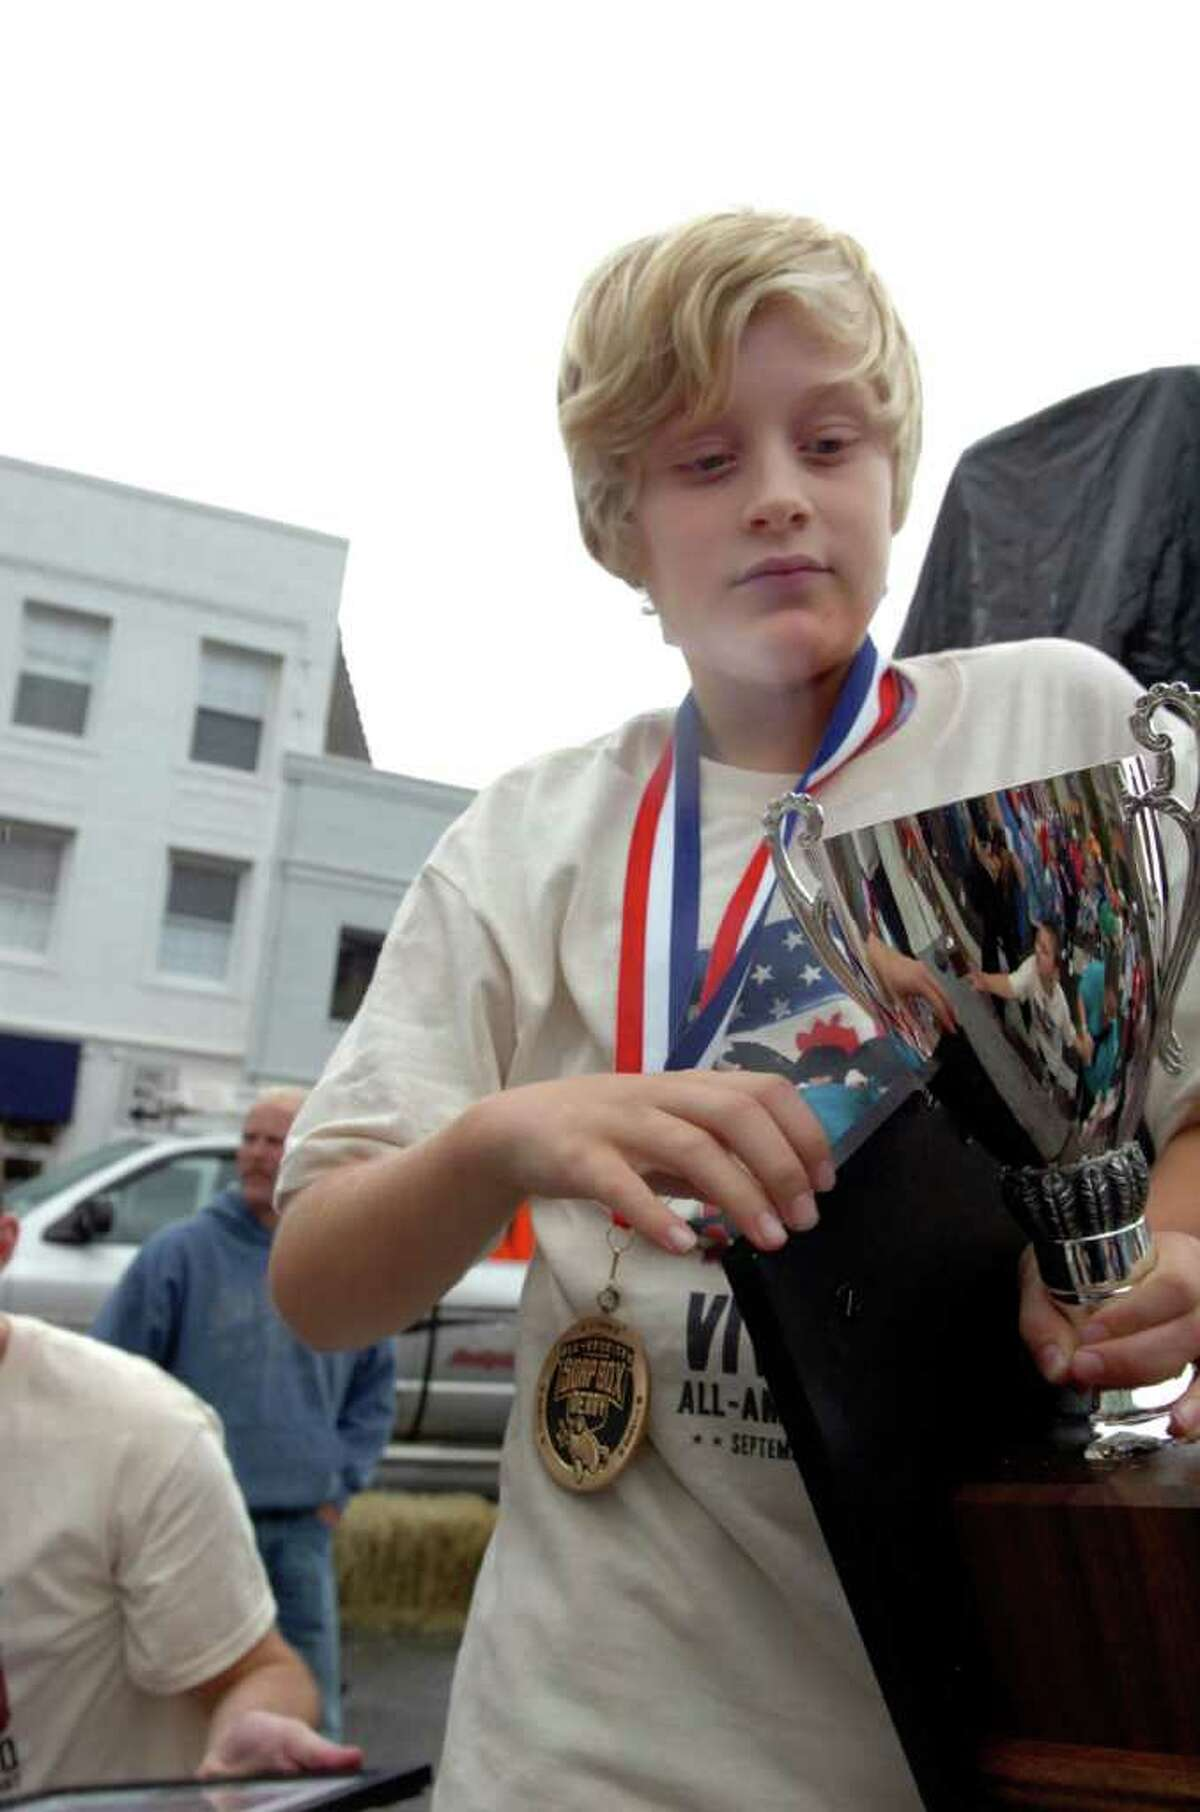 Justin Krumlauf, 11, won first place at the Soap Box Derby on Sunday, Sept. 12, 2010.